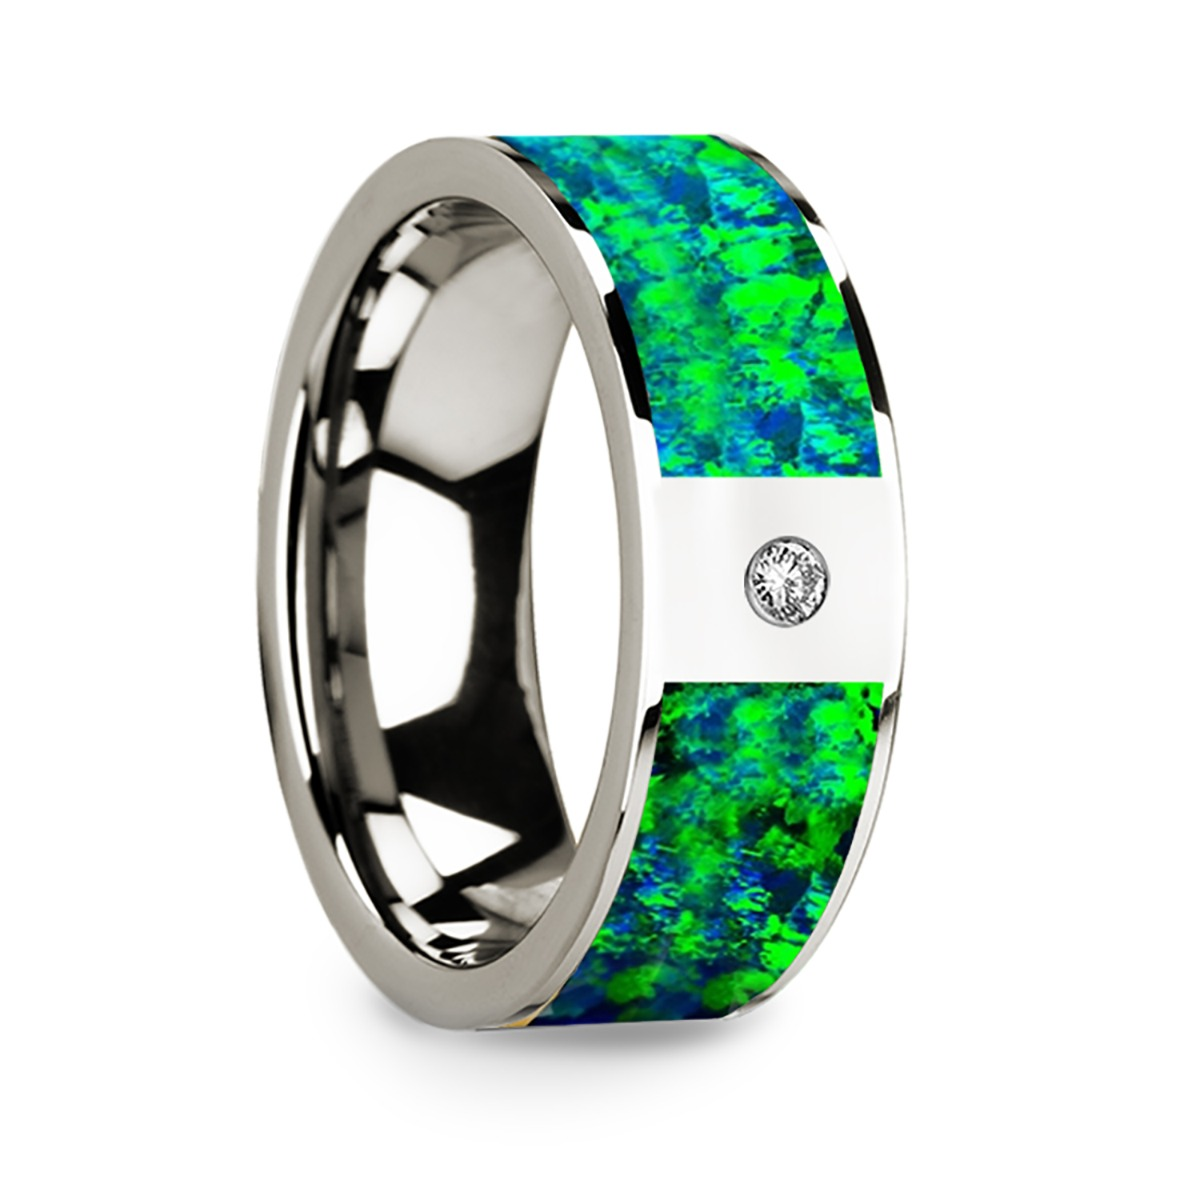 Men's Polished 14k White Gold & Green/Blue Opal Inlay Wedding Ring with Diamond - 8mm